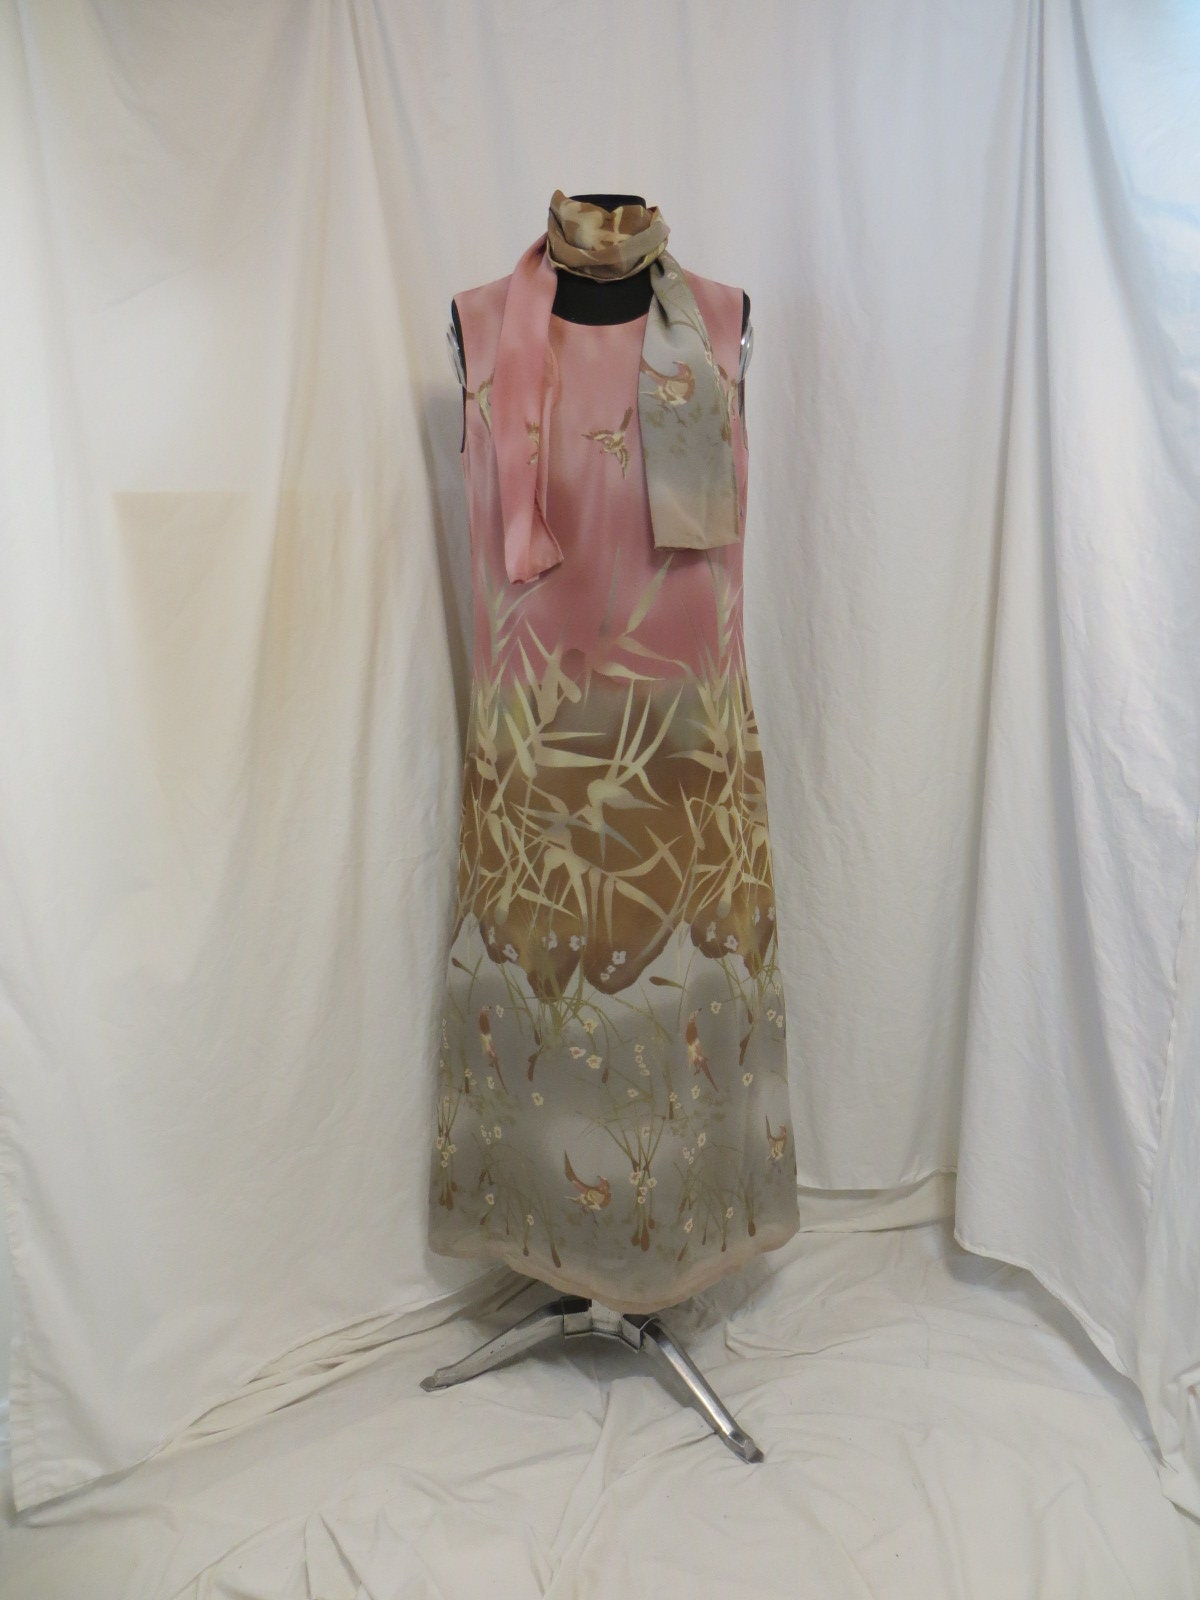 Vintage Scarf Styles -1920s to 1960s Vintage Dress Long Sheath Maxi Classic European Quality By Imagio Beautiful Bird  Bamboo Pastel Colors Rose  Gray Mrksz10 $0.00 AT vintagedancer.com